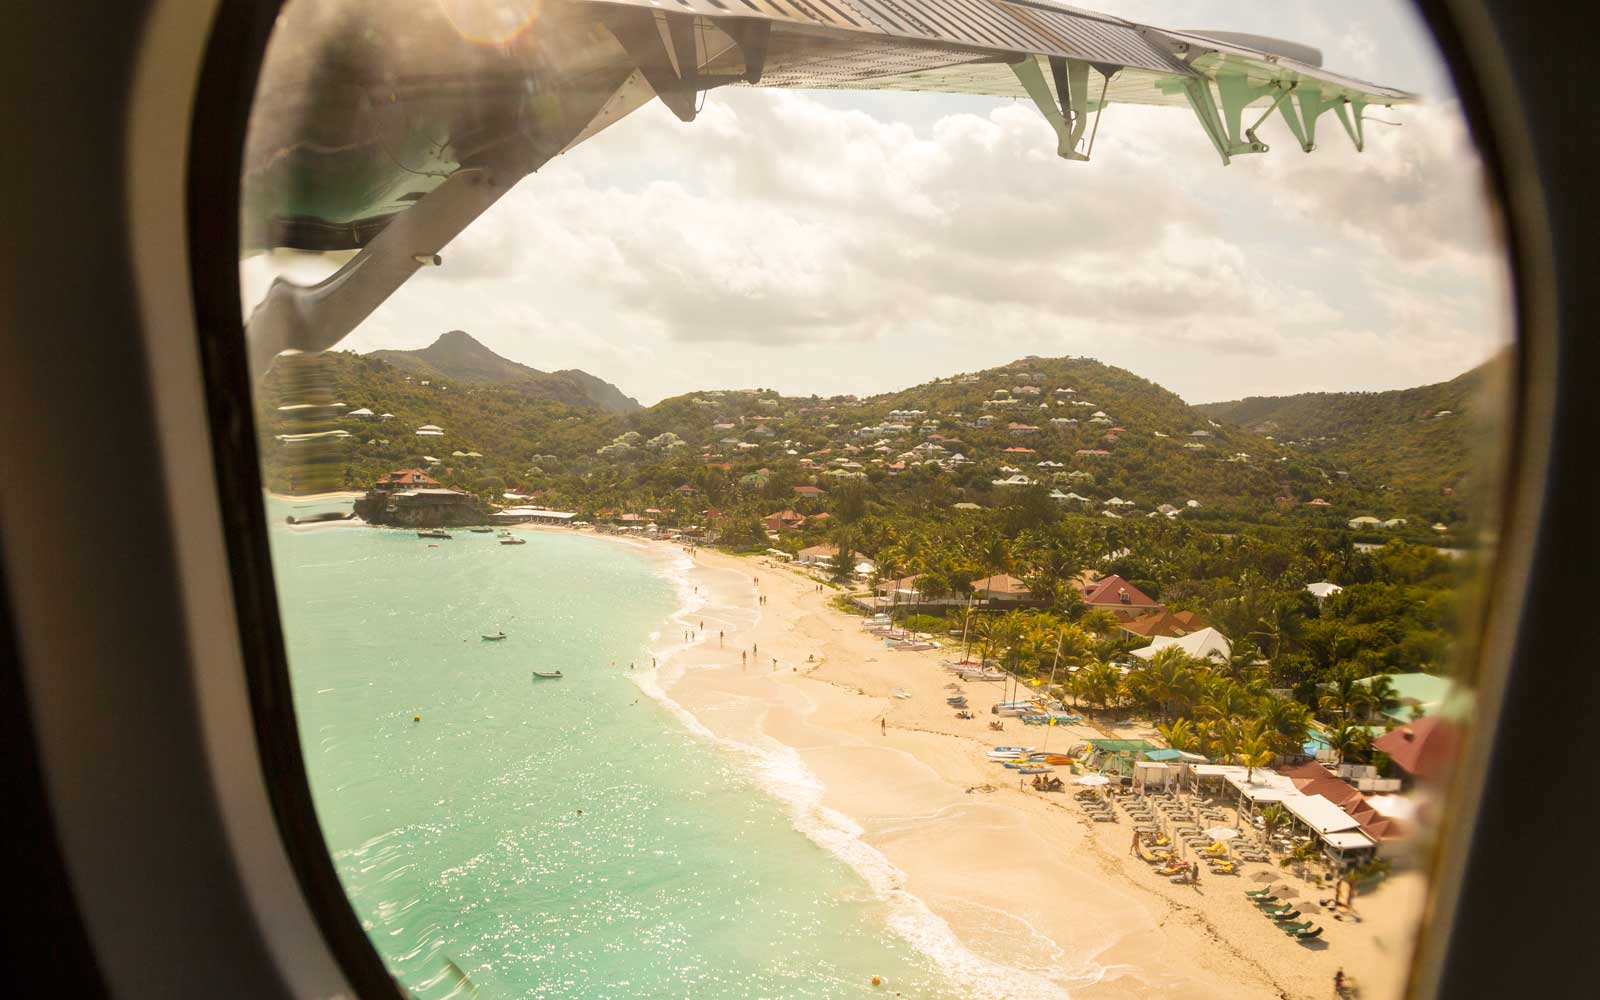 View of beach from the window of an airplane